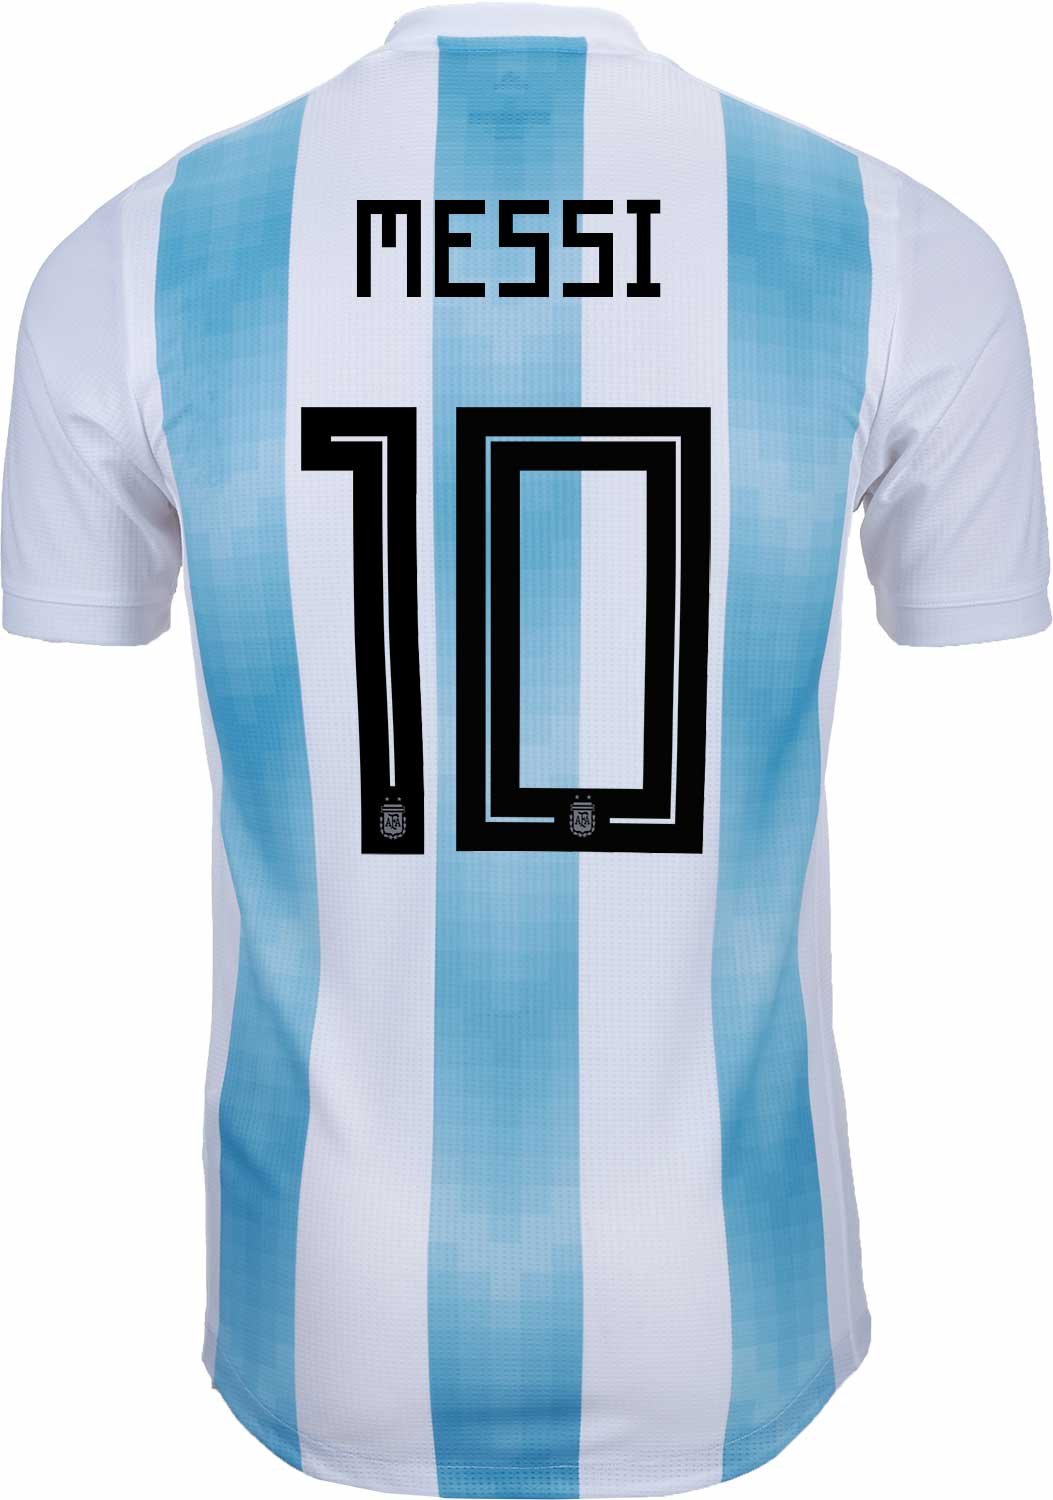 quality design ad7d1 46597 adidas Lionel Messi Argentina Authentic Home Jersey 2018-19 ...